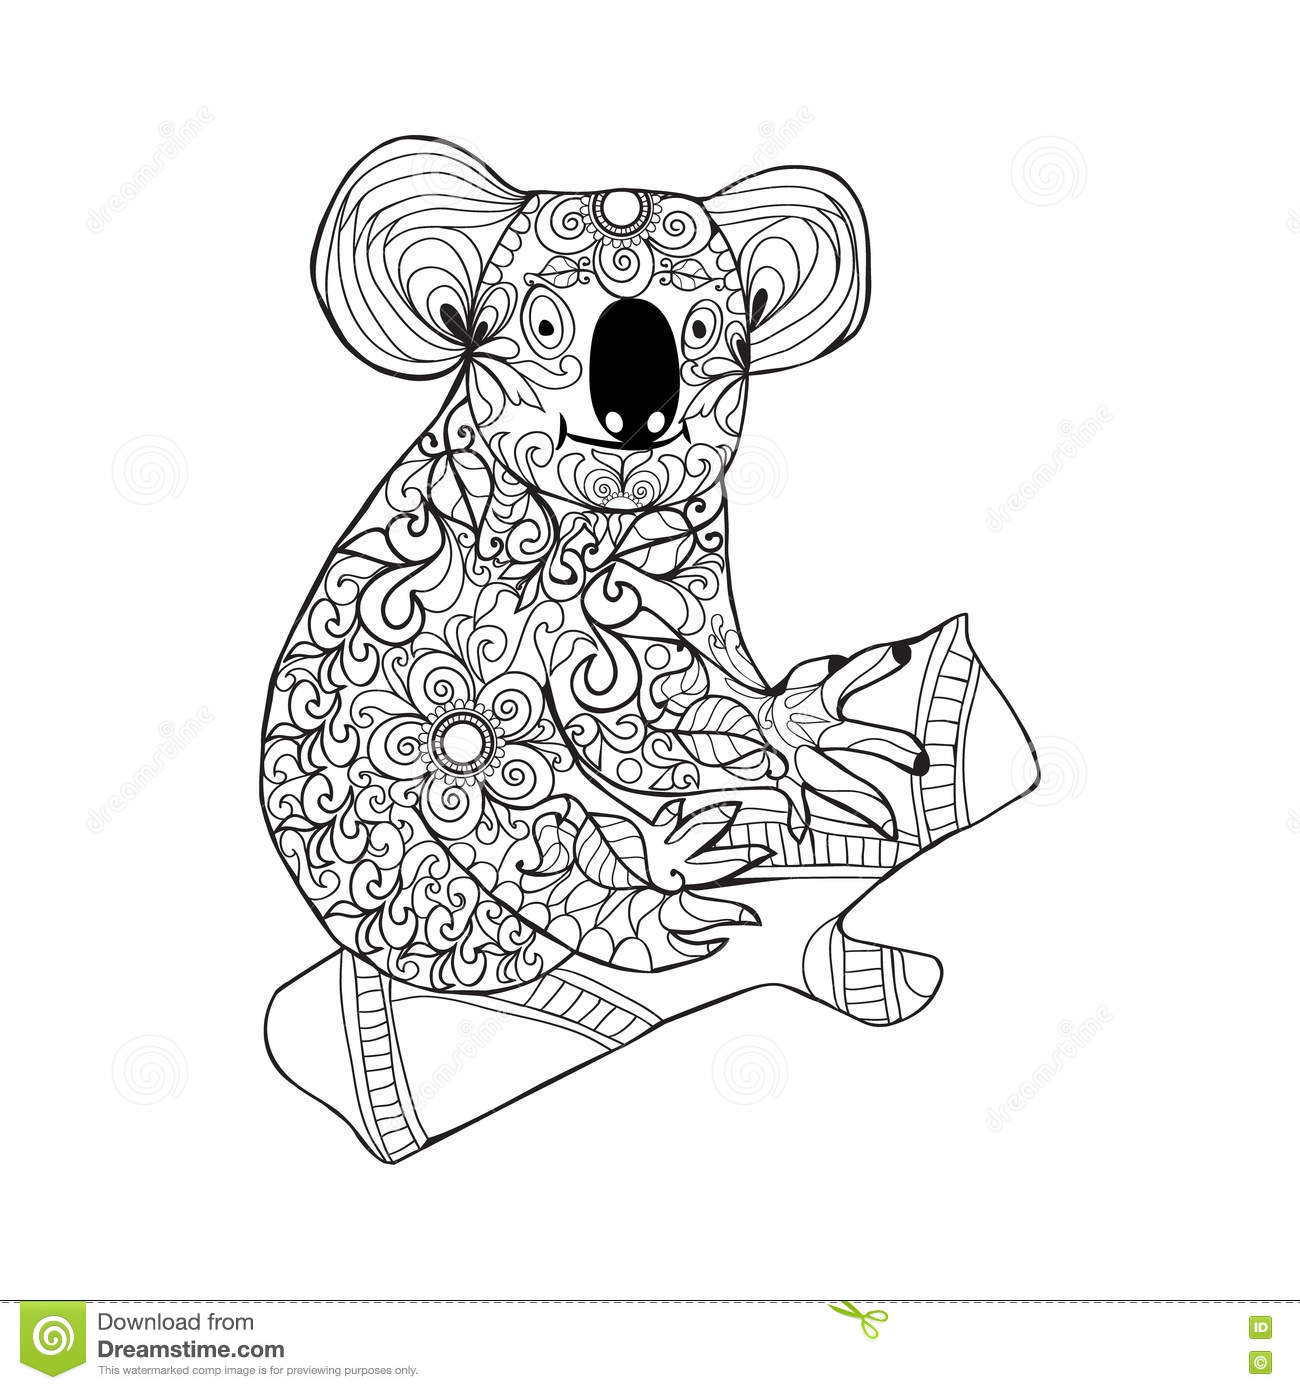 Black White Hand Drawn Doodle Animal For Coloring Page Stock Photography